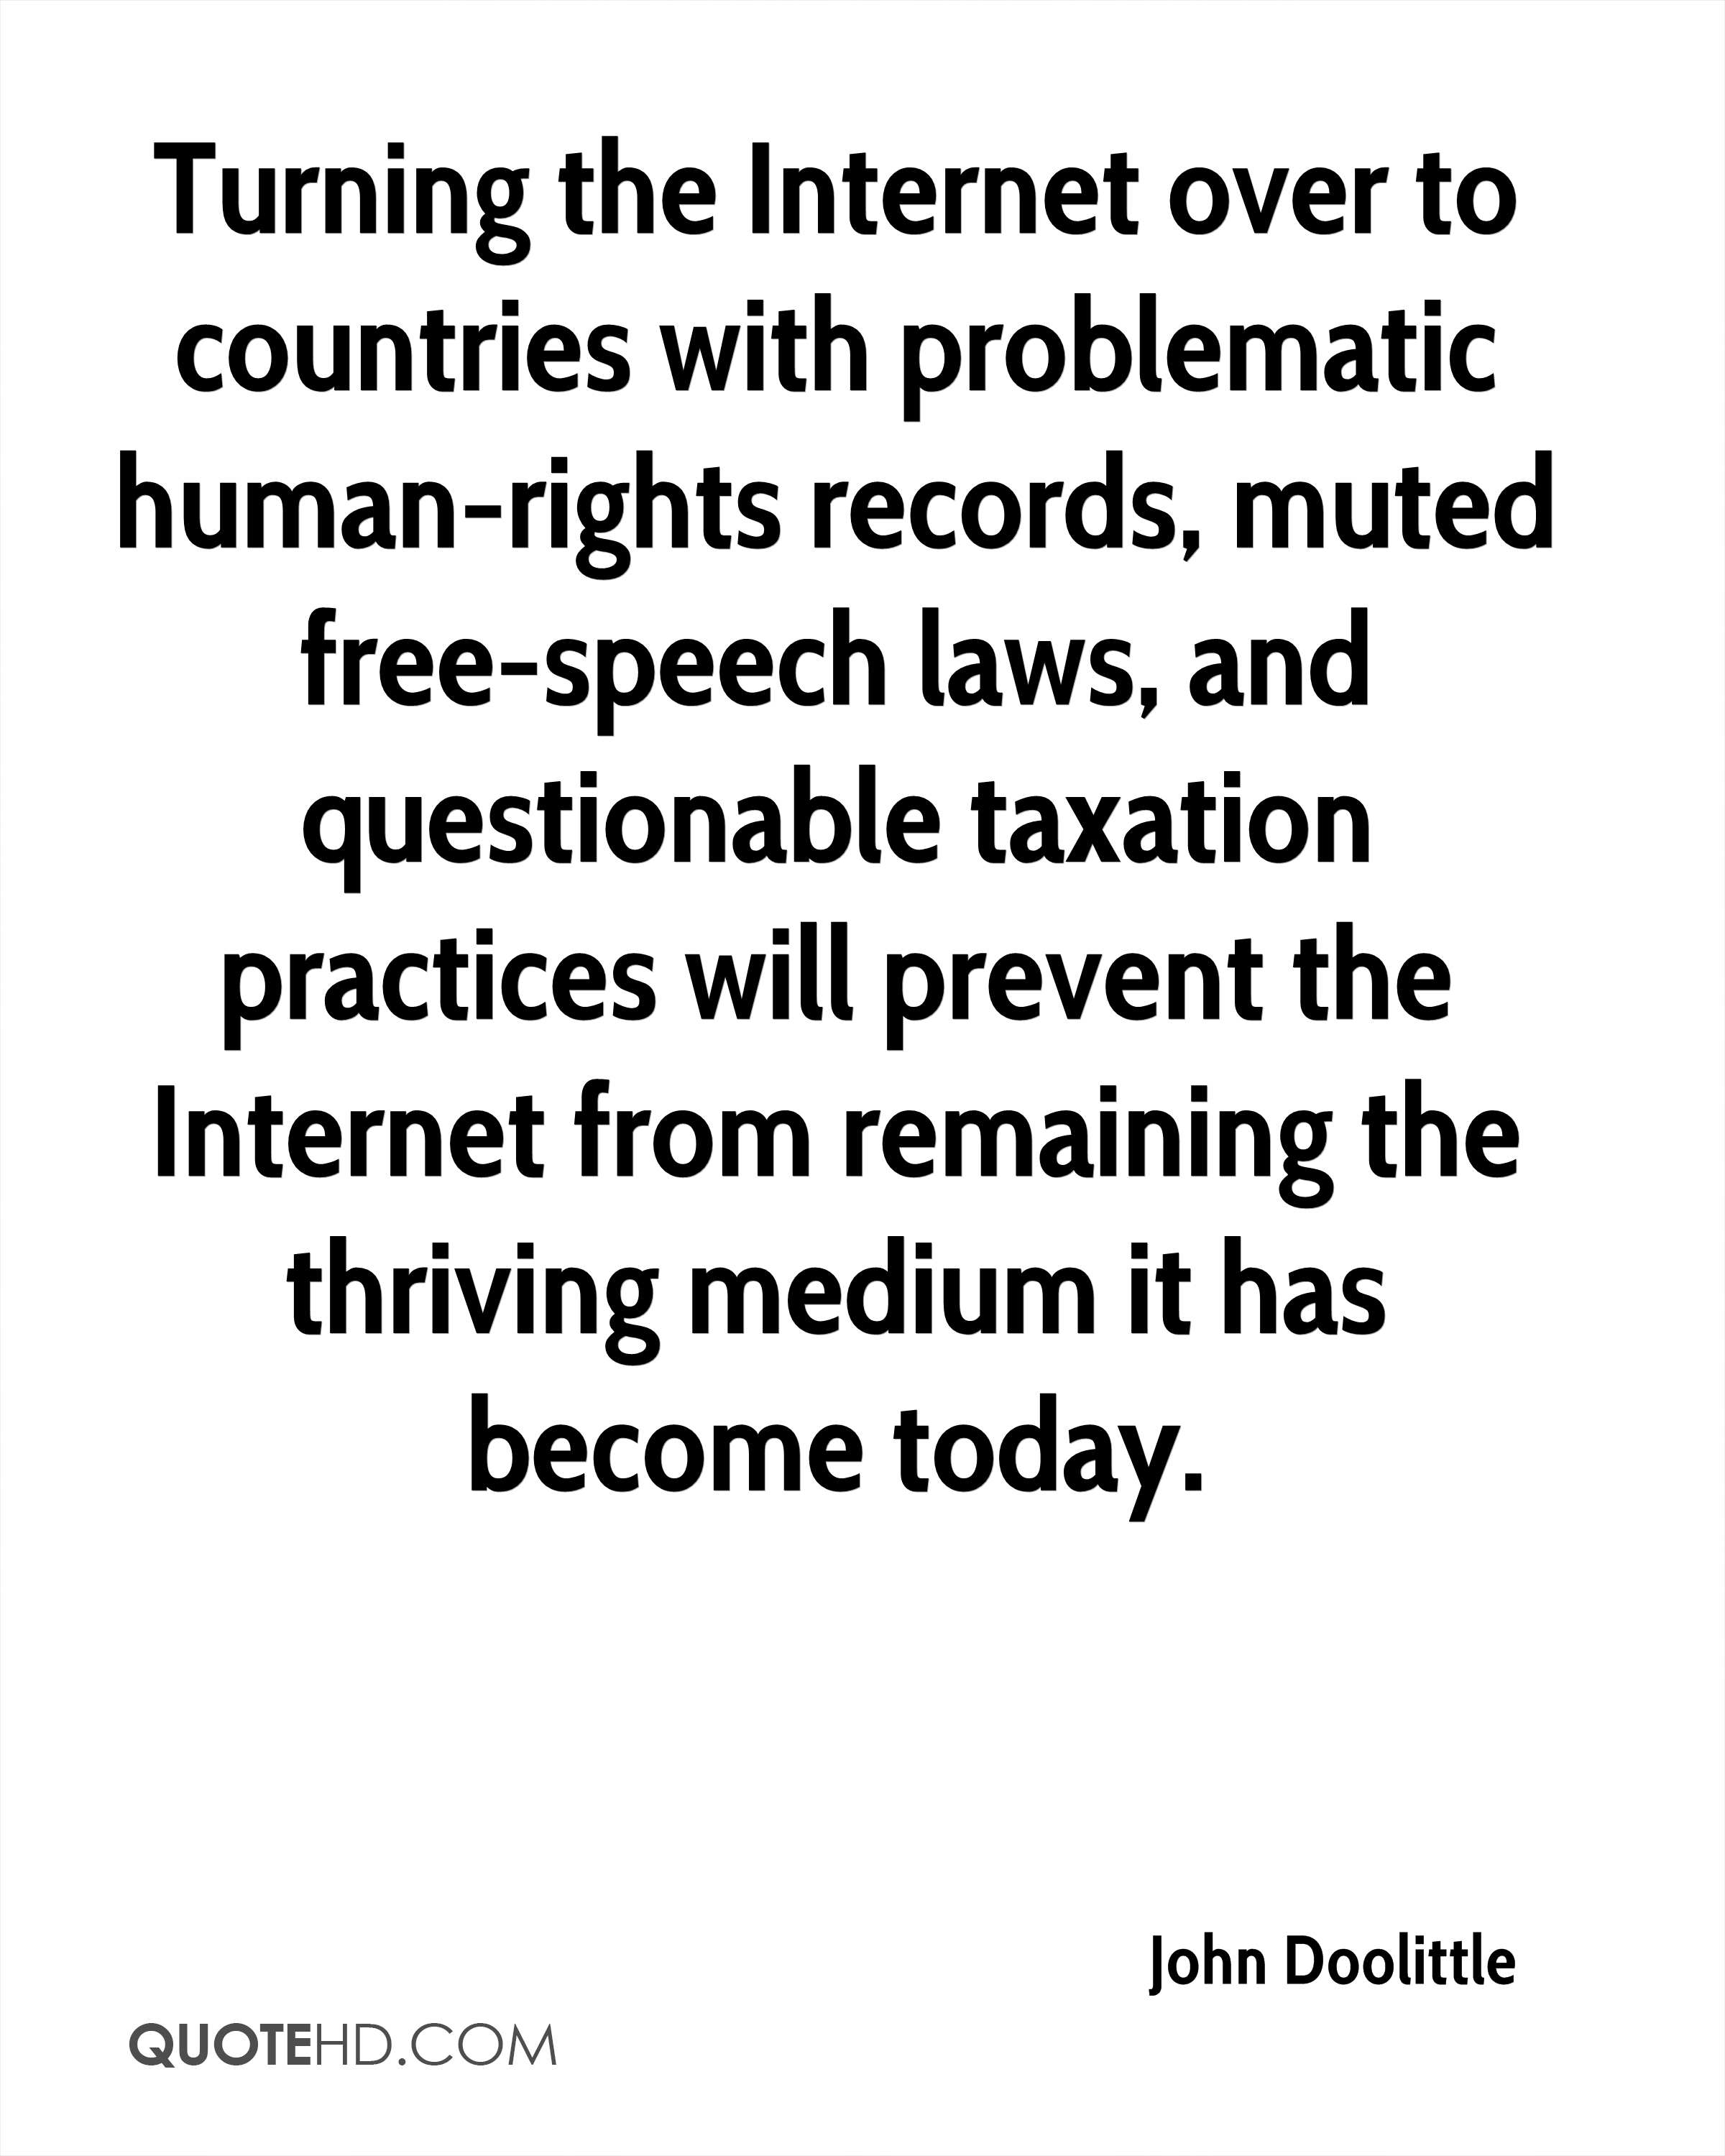 Turning the Internet over to countries with problematic human-rights records, muted free-speech laws, and questionable taxation practices will prevent the Internet from remaining the thriving medium it has become today.